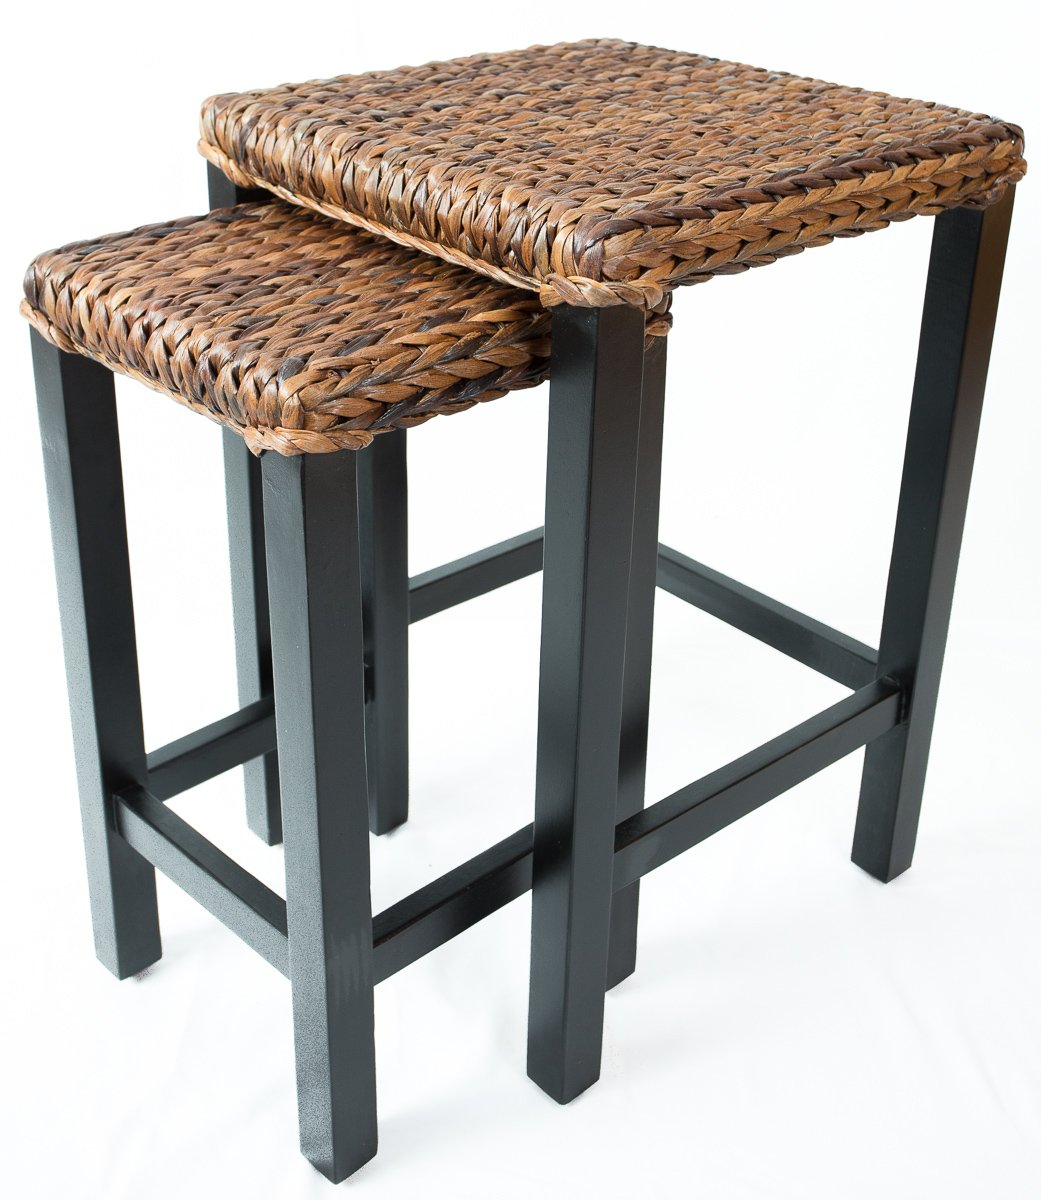 BIRDROCK HOME Seagrass Nesting Accent Tables – Hand Woven Seagrass – Fully Assembled